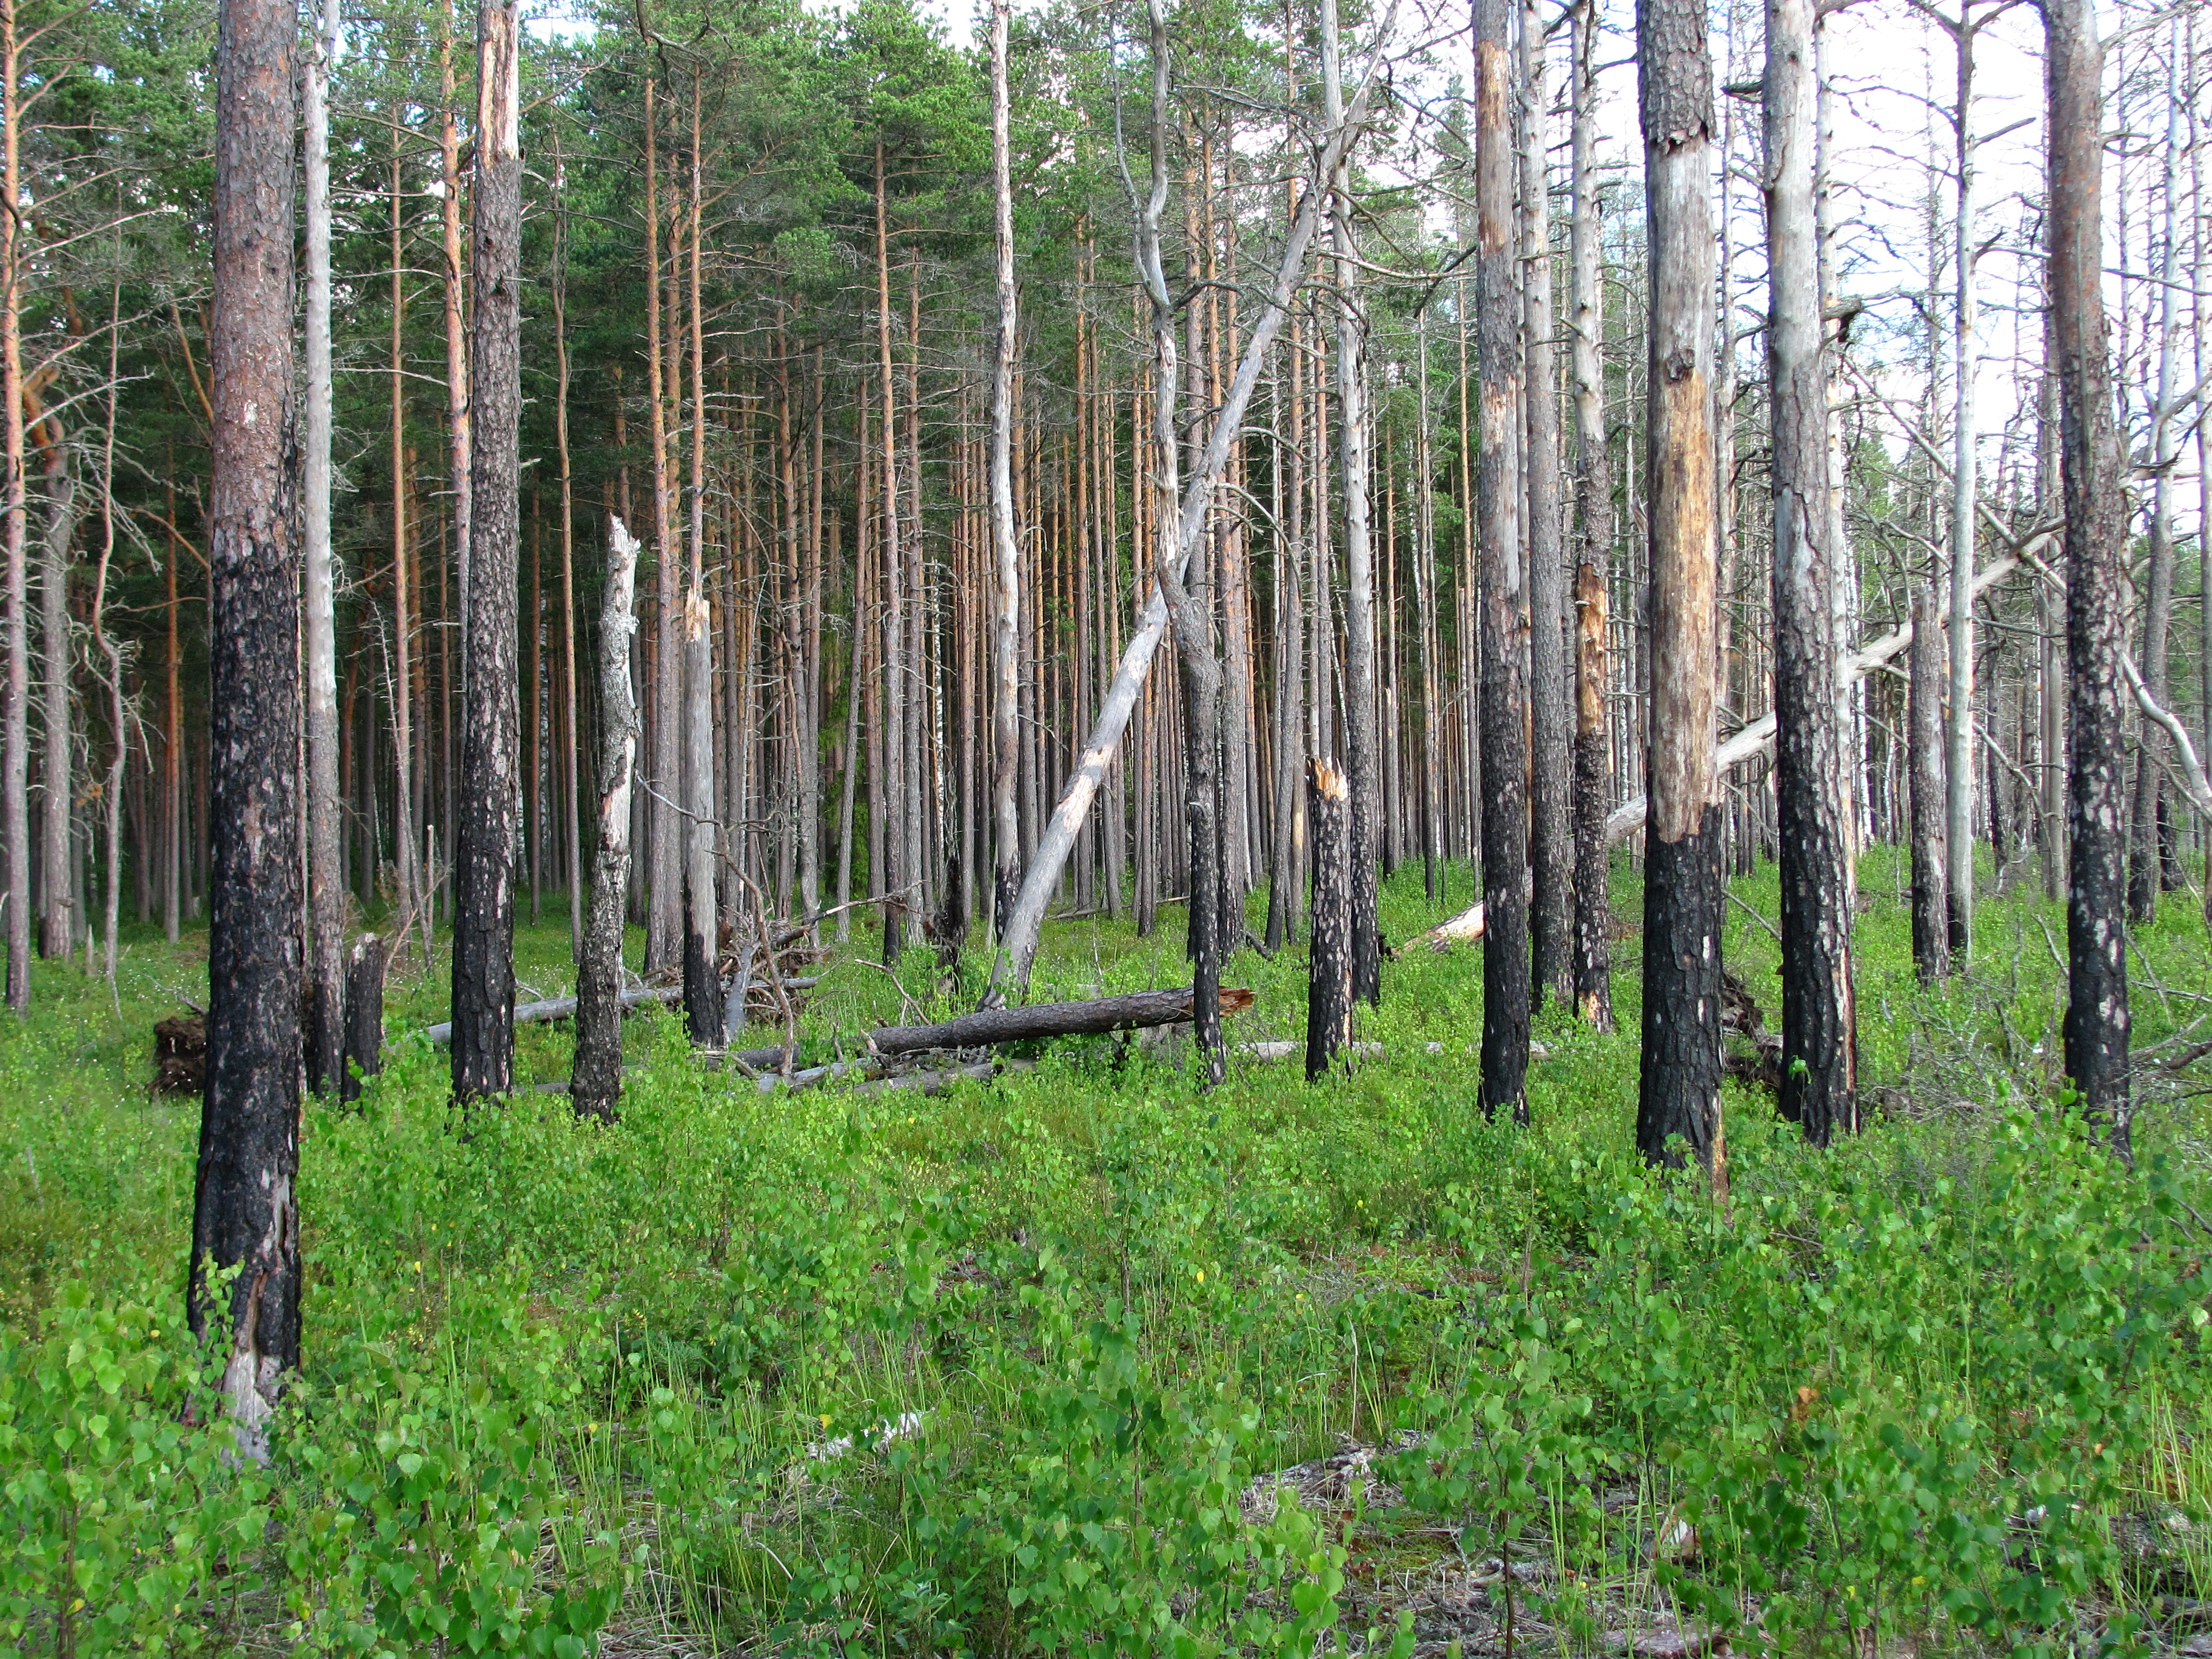 File:Boreal pine forest 6 years after fire, 2012-07.jpg ...